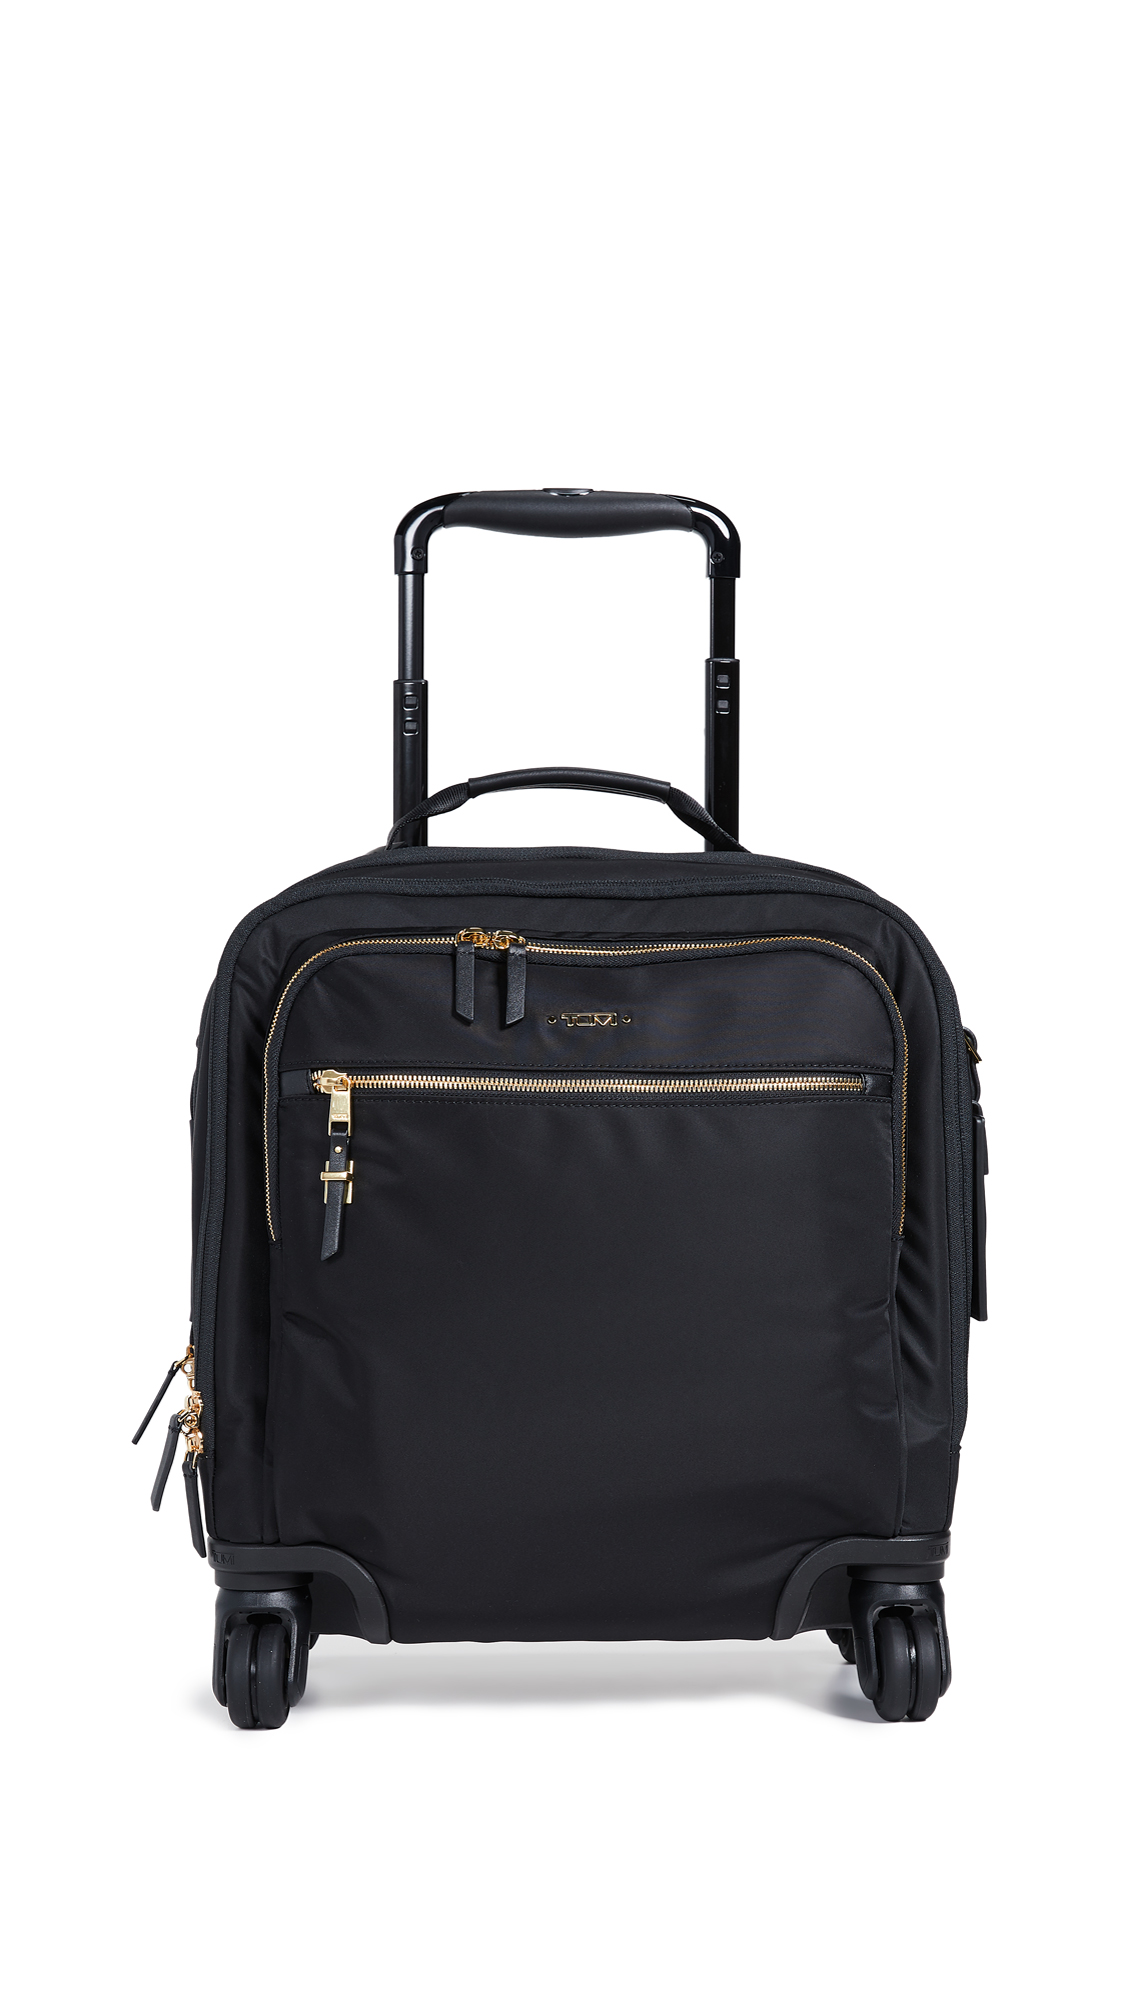 Voyageur Osona 16-Inch Compact Carry-On - Black